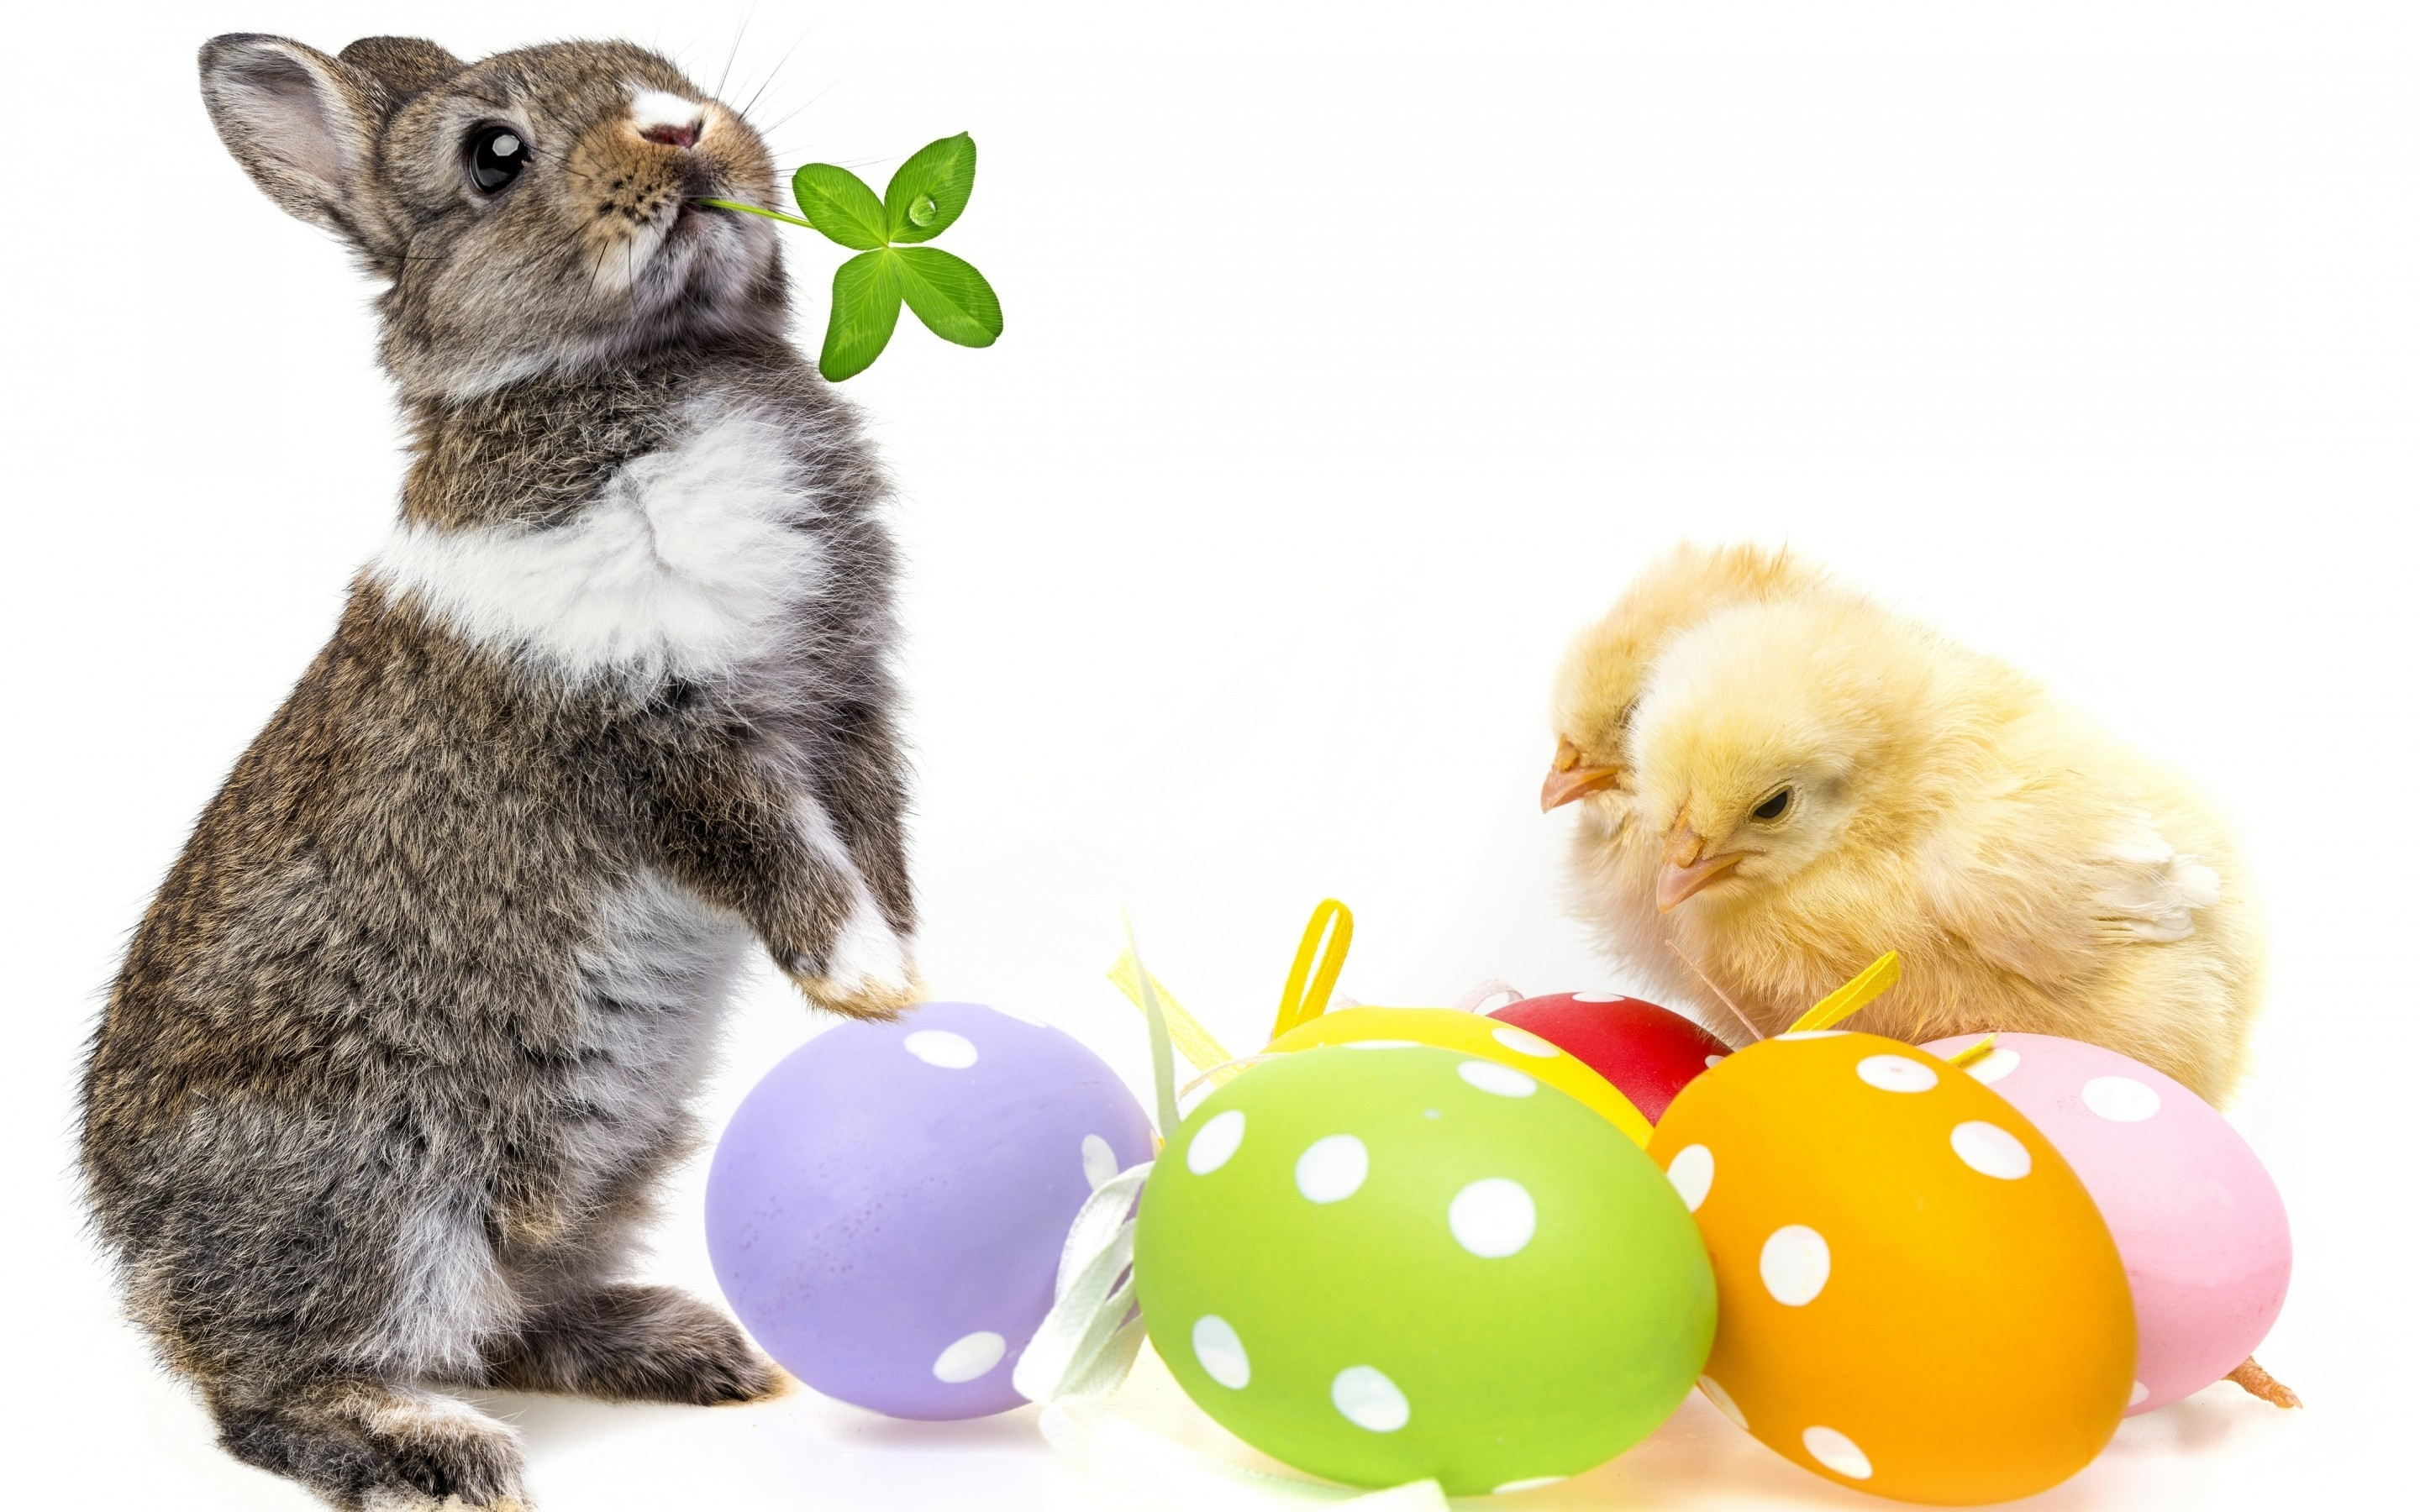 Cute Easter Bunny for 2880 x 1800 Retina Display resolution